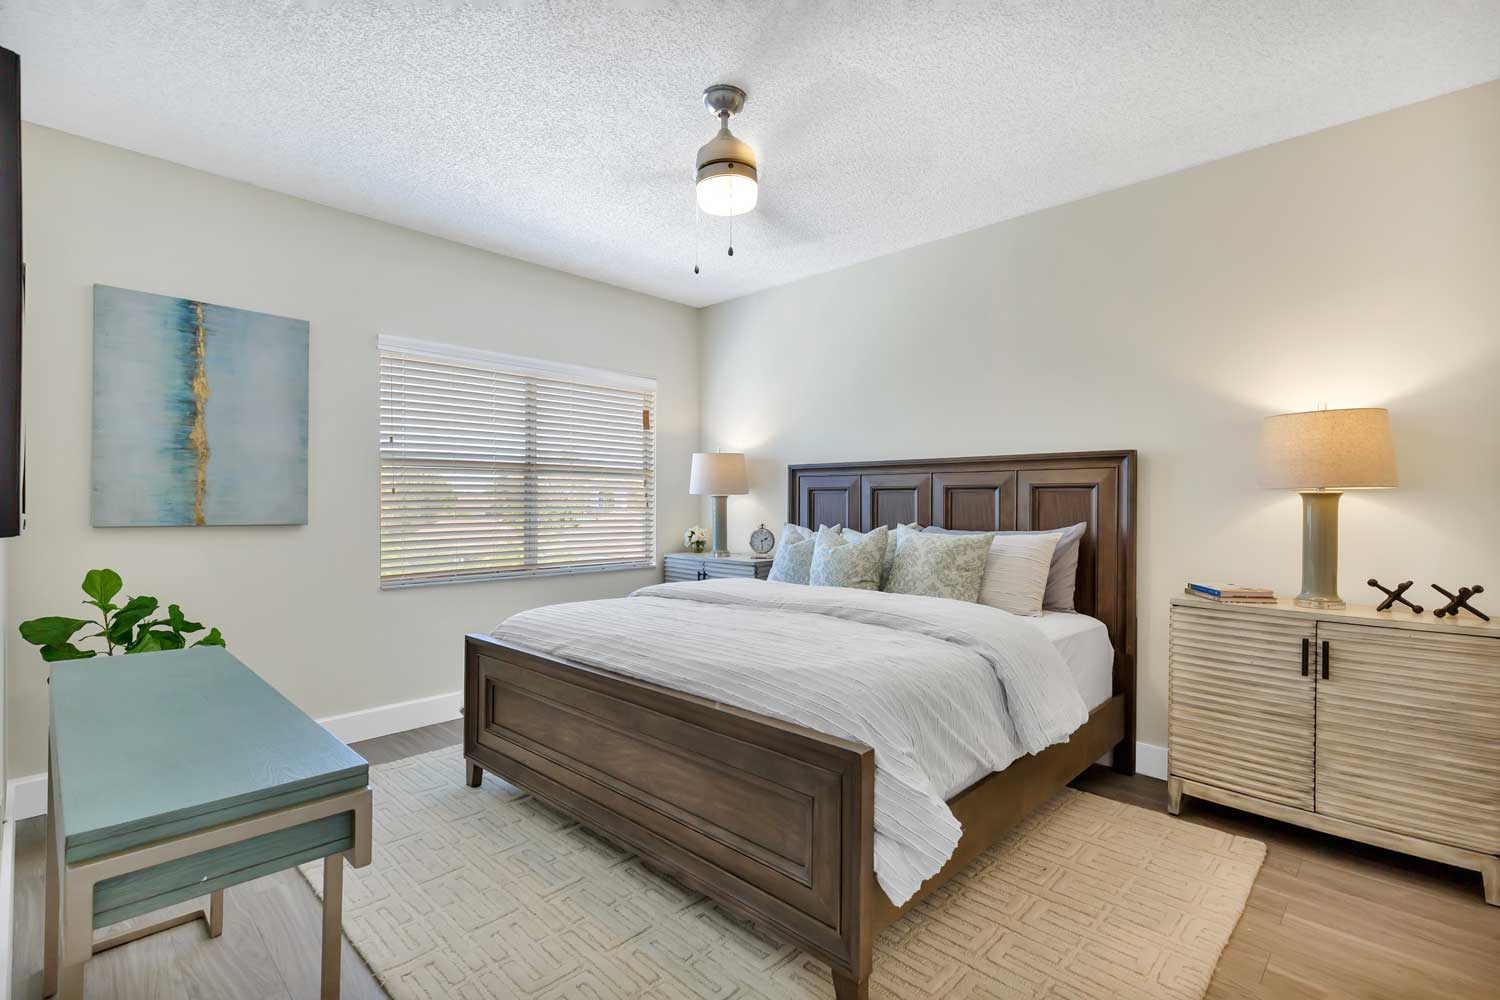 Spacious Master Bedroom with a King Size Bed at Windsor Castle Apartments in Coral Springs, Florida